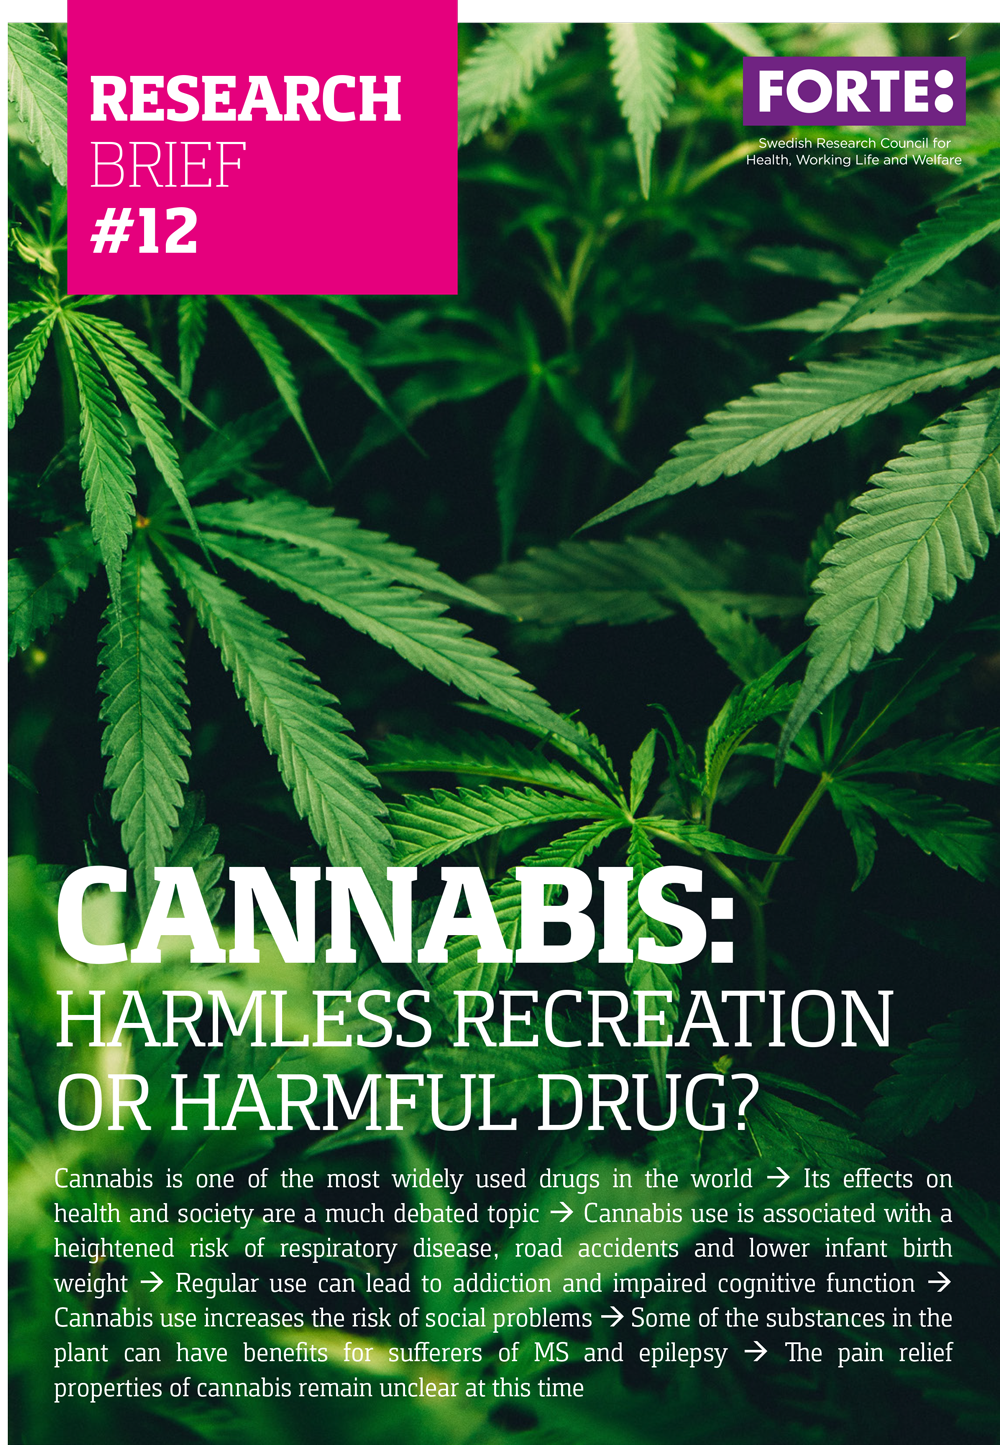 Research brief: Cannabis – harmless recreation or harmful drug?